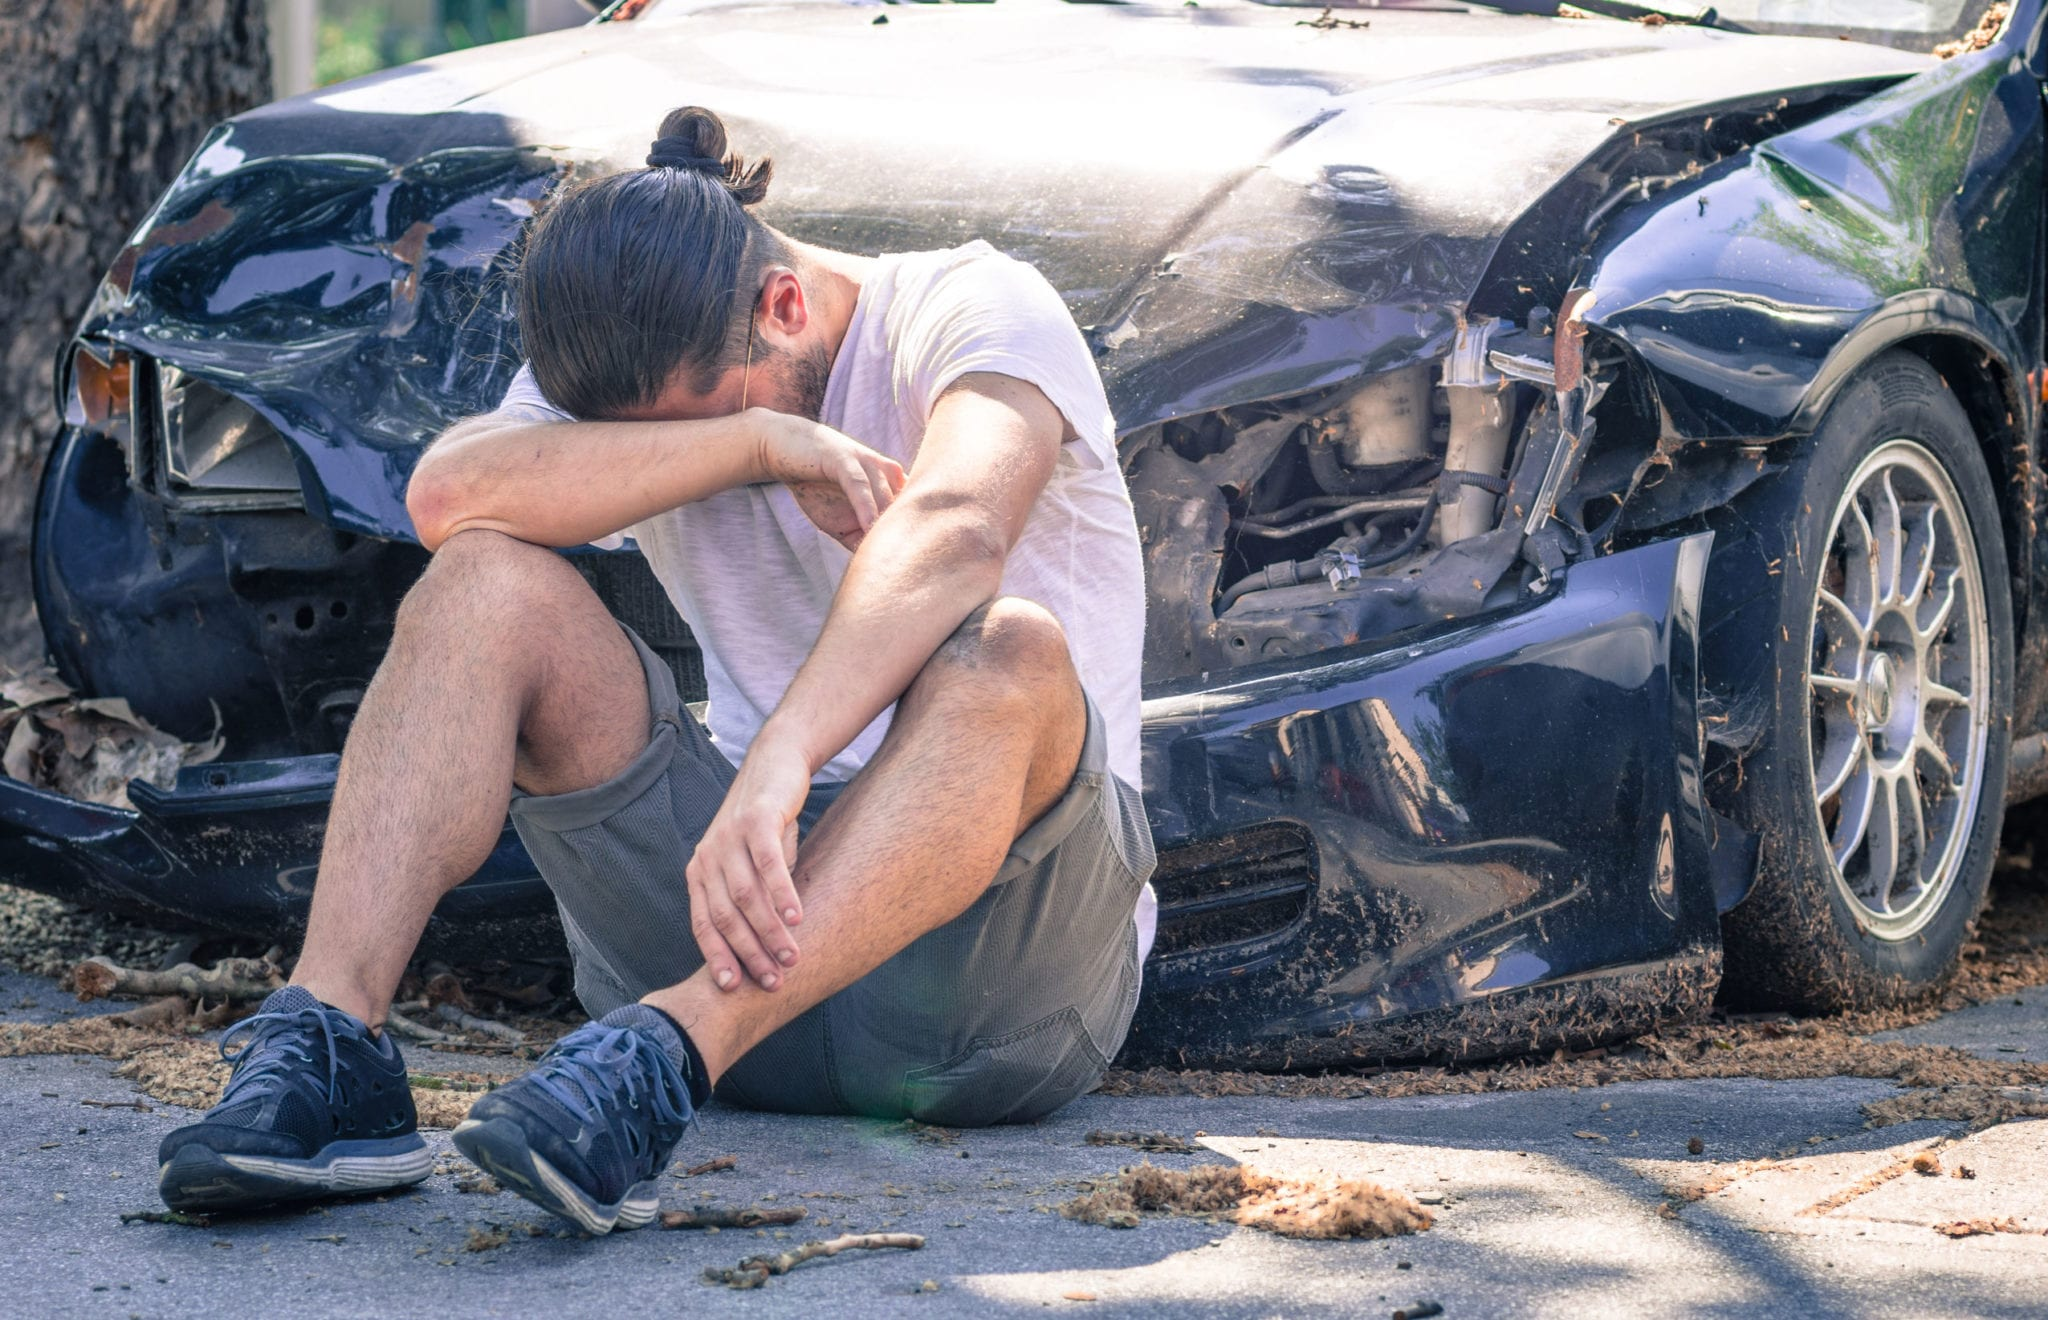 Did You Know More Texans Get into Car Crashes over the Summer?